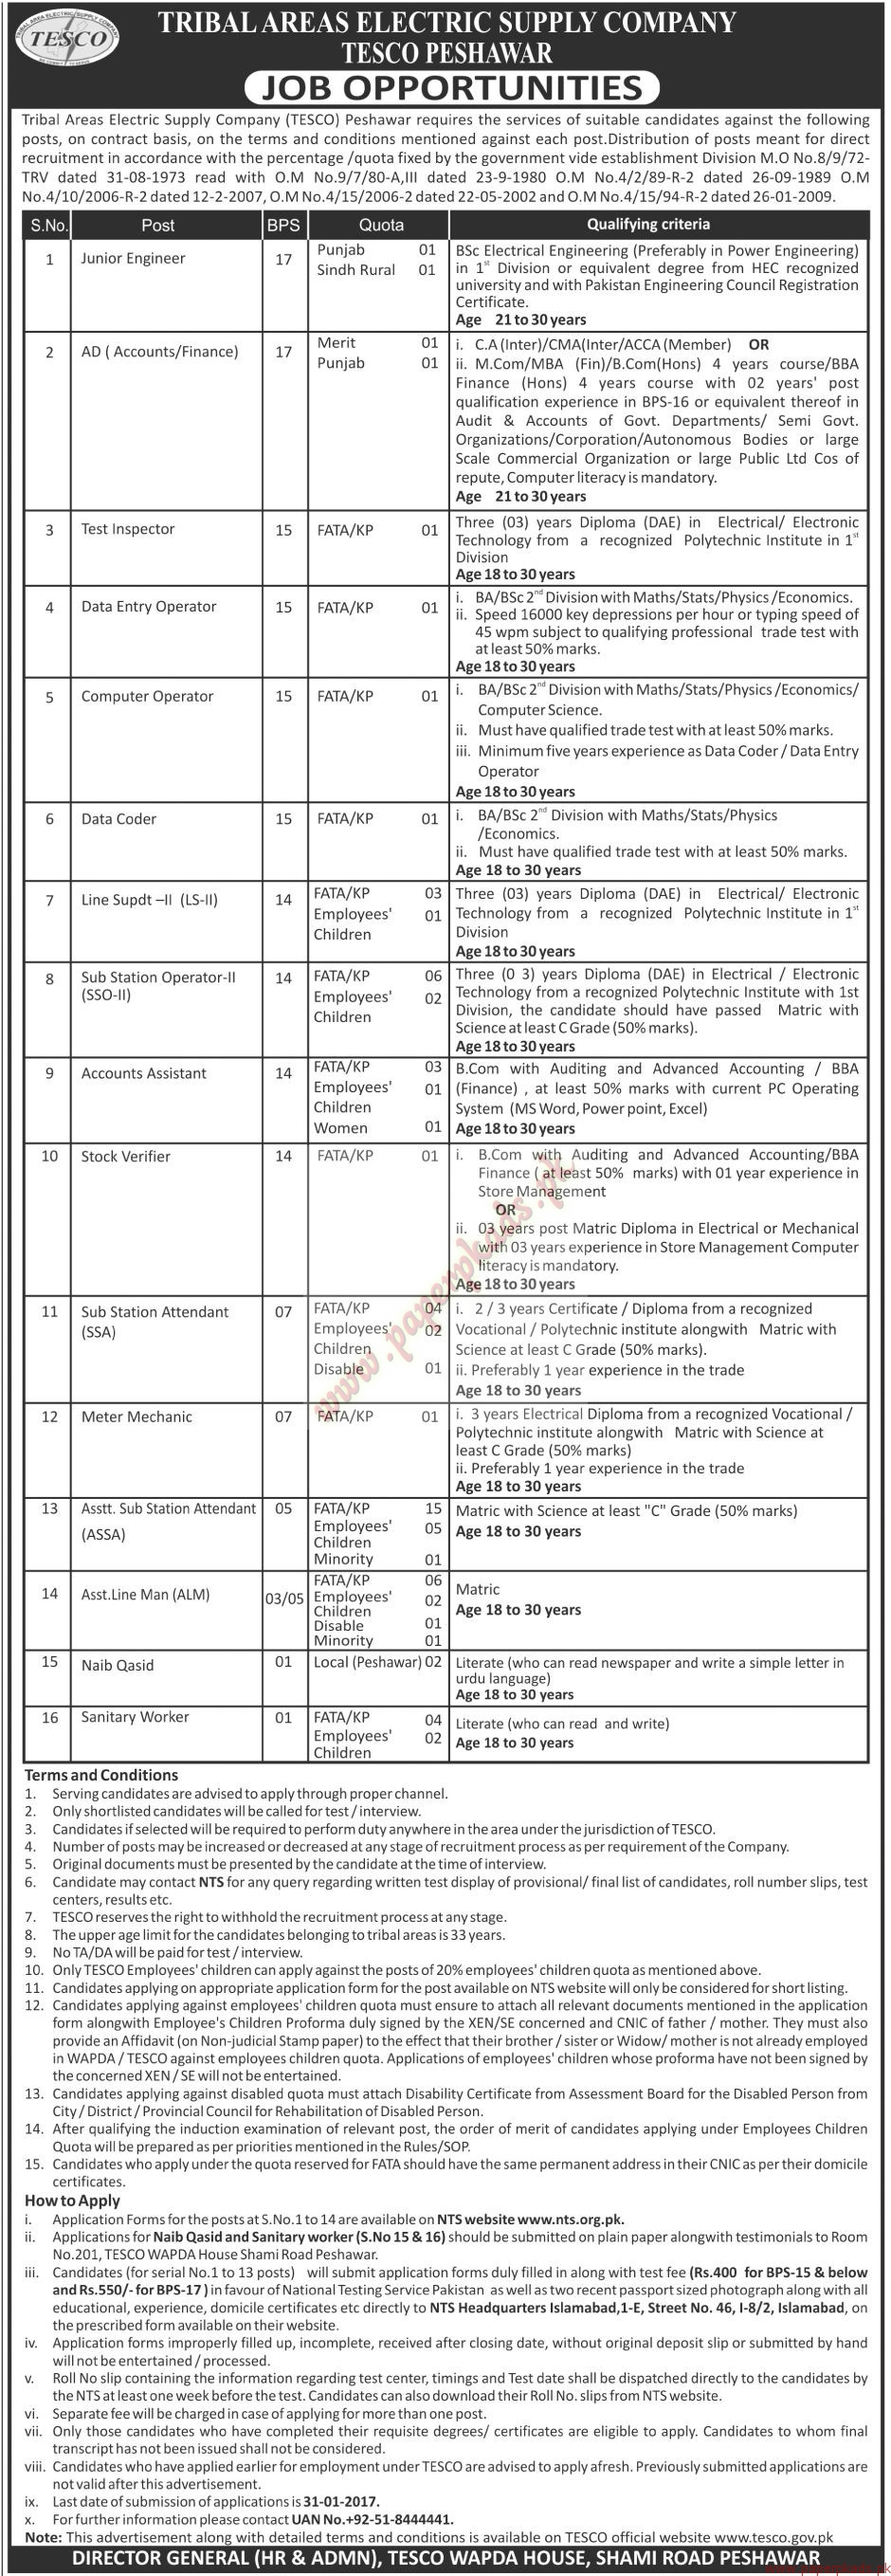 Tribal Areas Electric Supply Company TESCO Peshawar Jobs